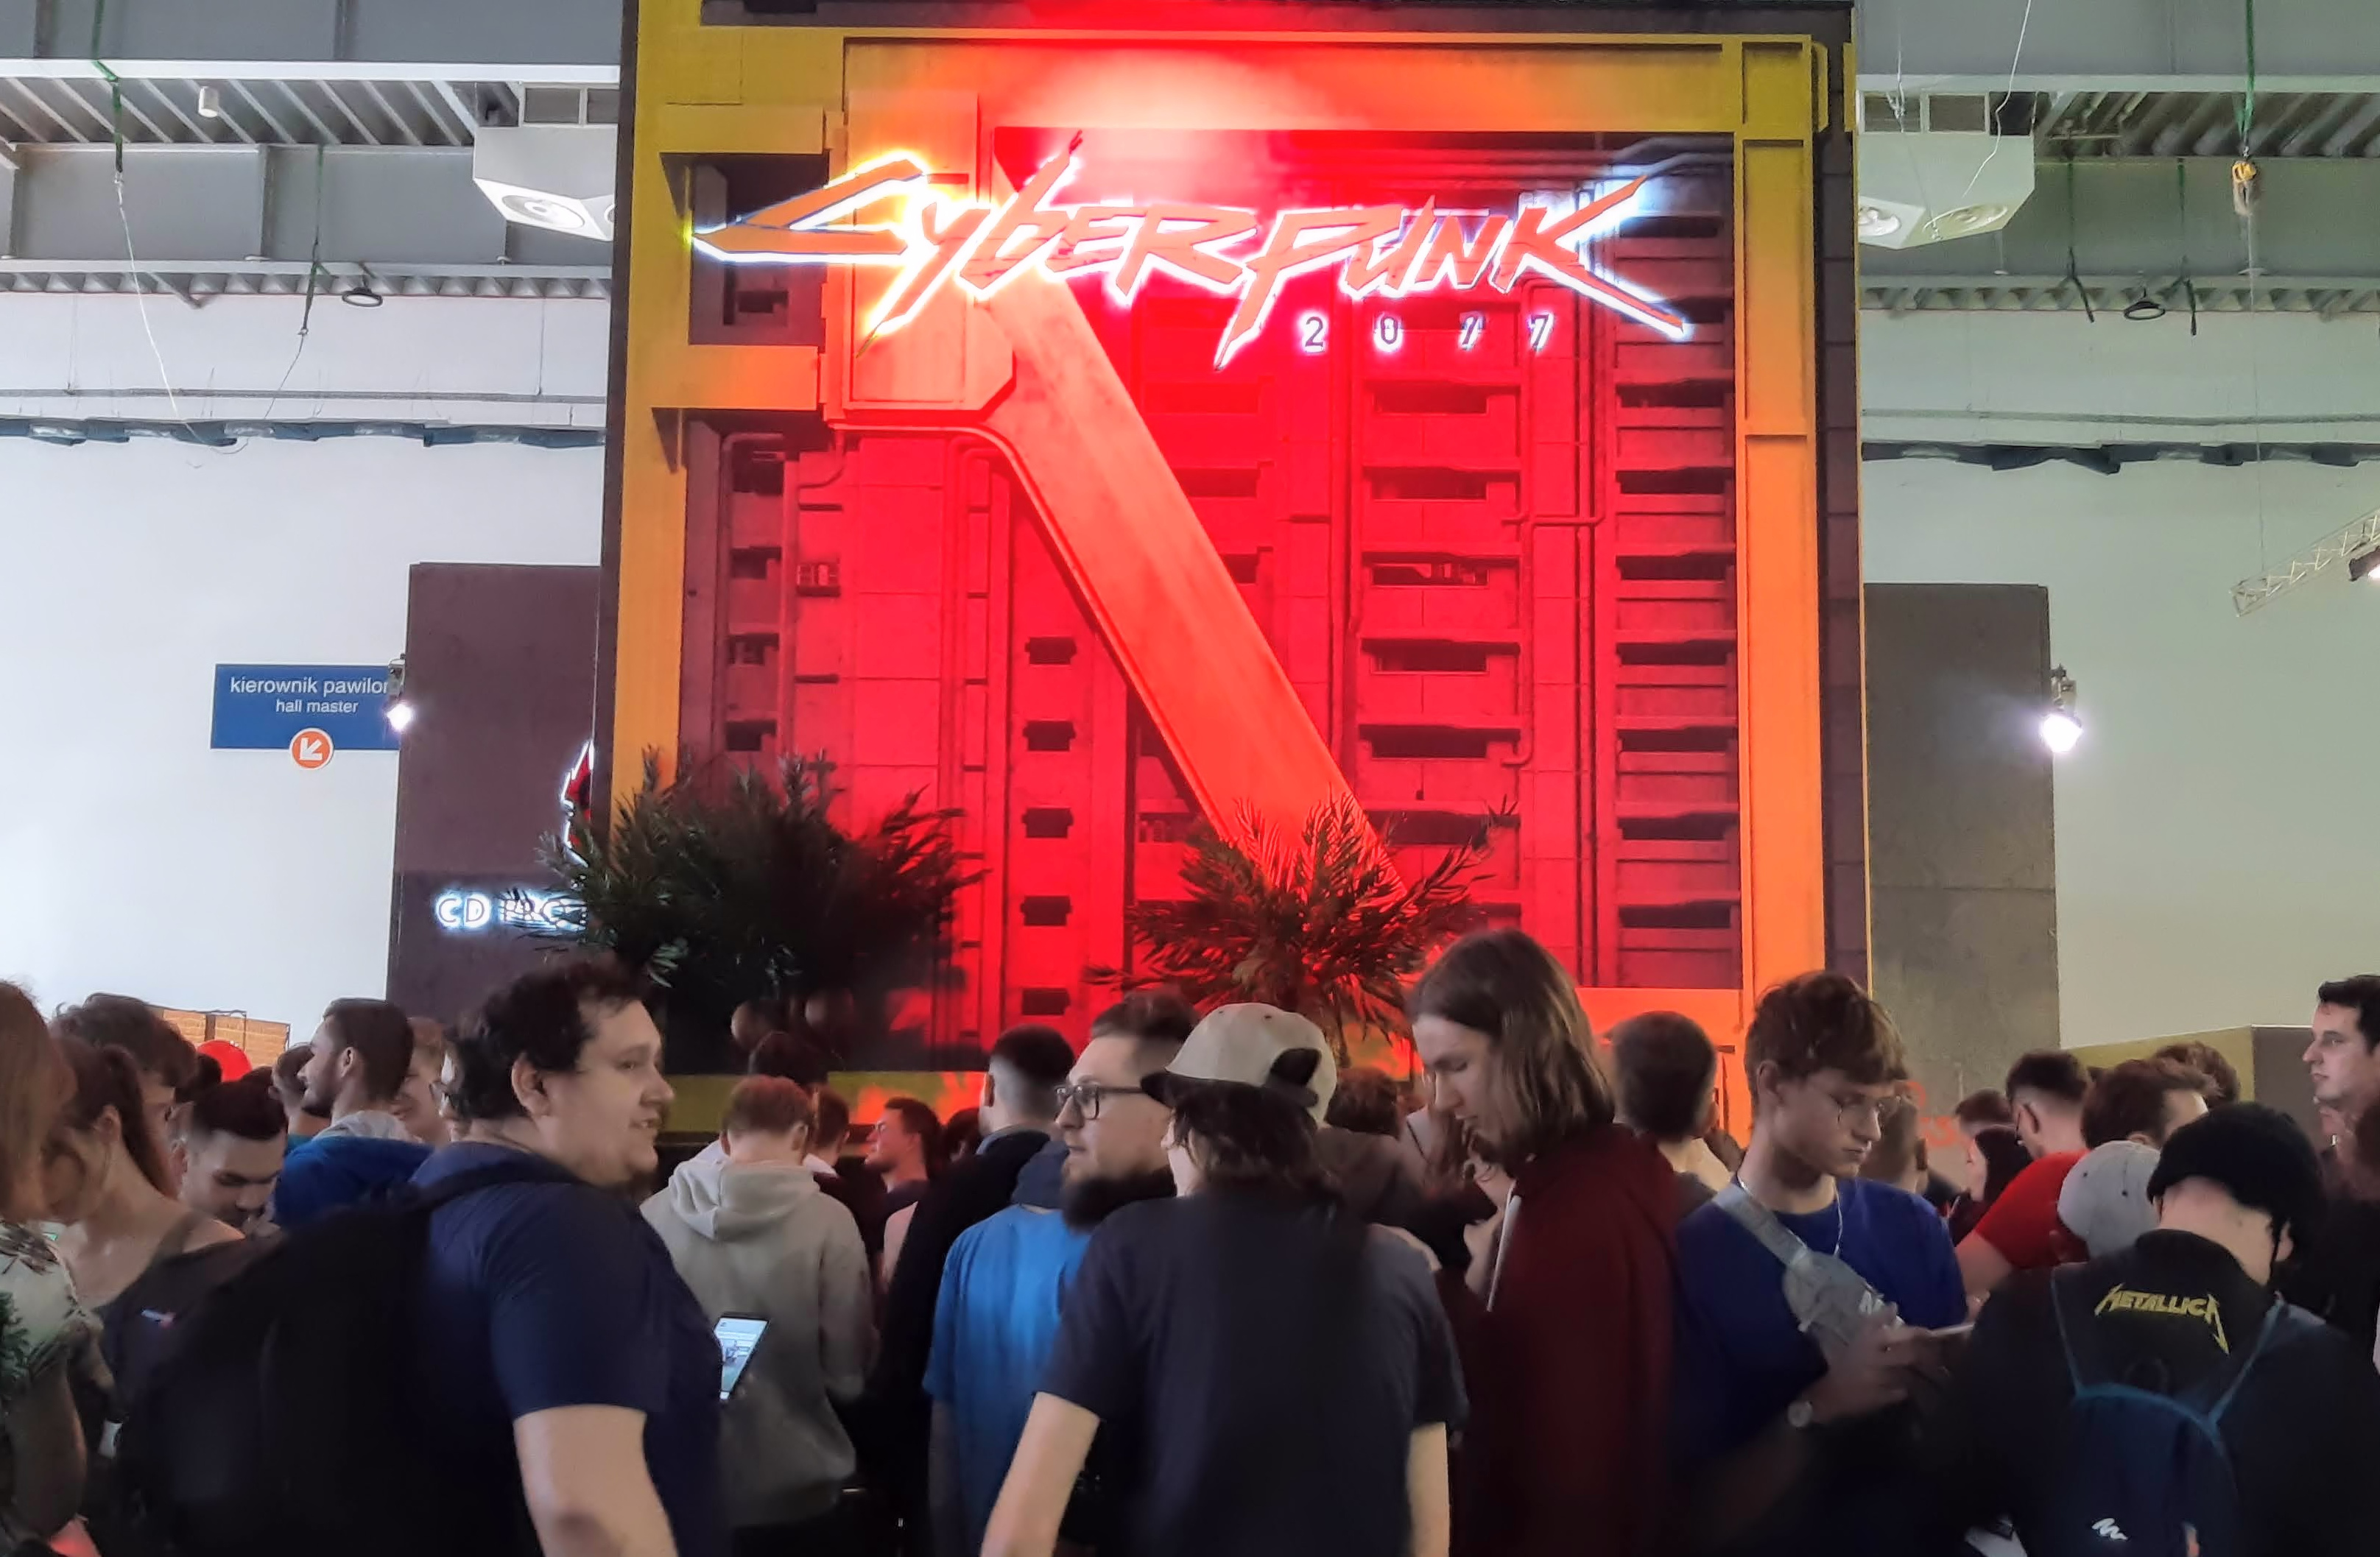 Cyberpunk 2077 Release Gets Mixed Reactions